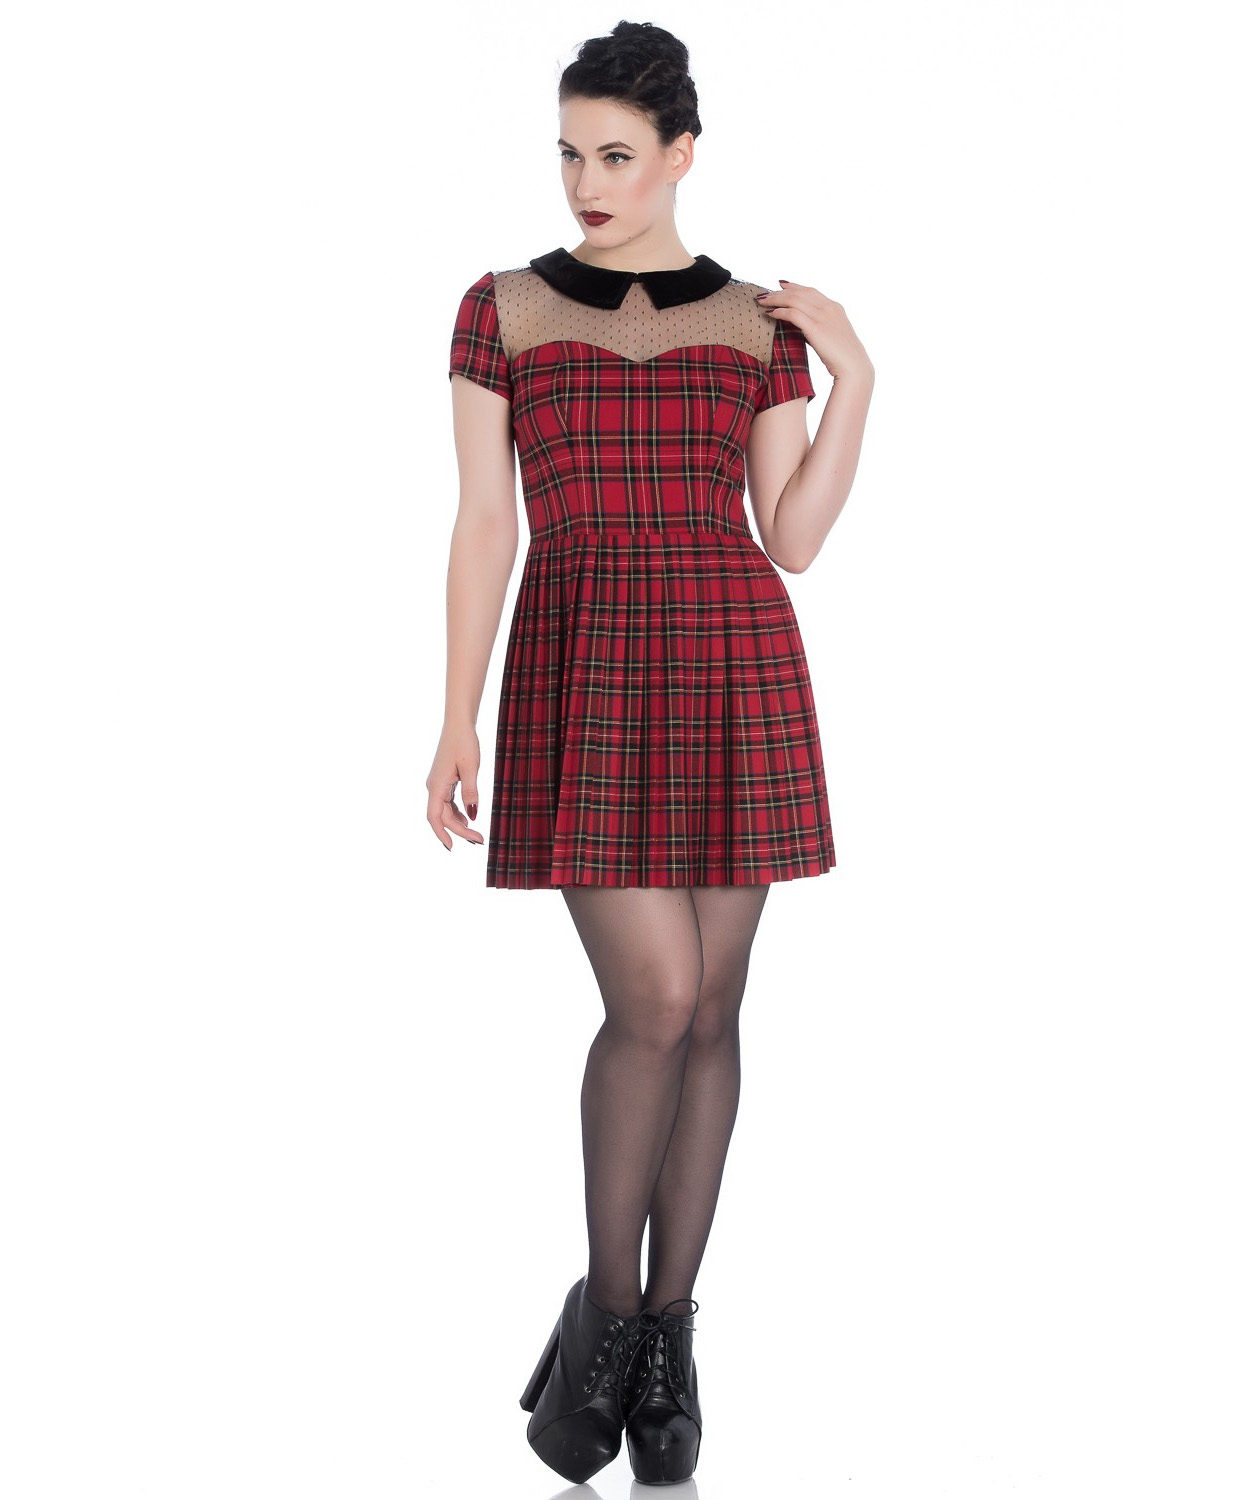 Hell-Bunny-Spin-Doctor-Goth-Punk-Mini-Dress-LILITH-Mesh-Red-Tartan-All-Sizes thumbnail 3